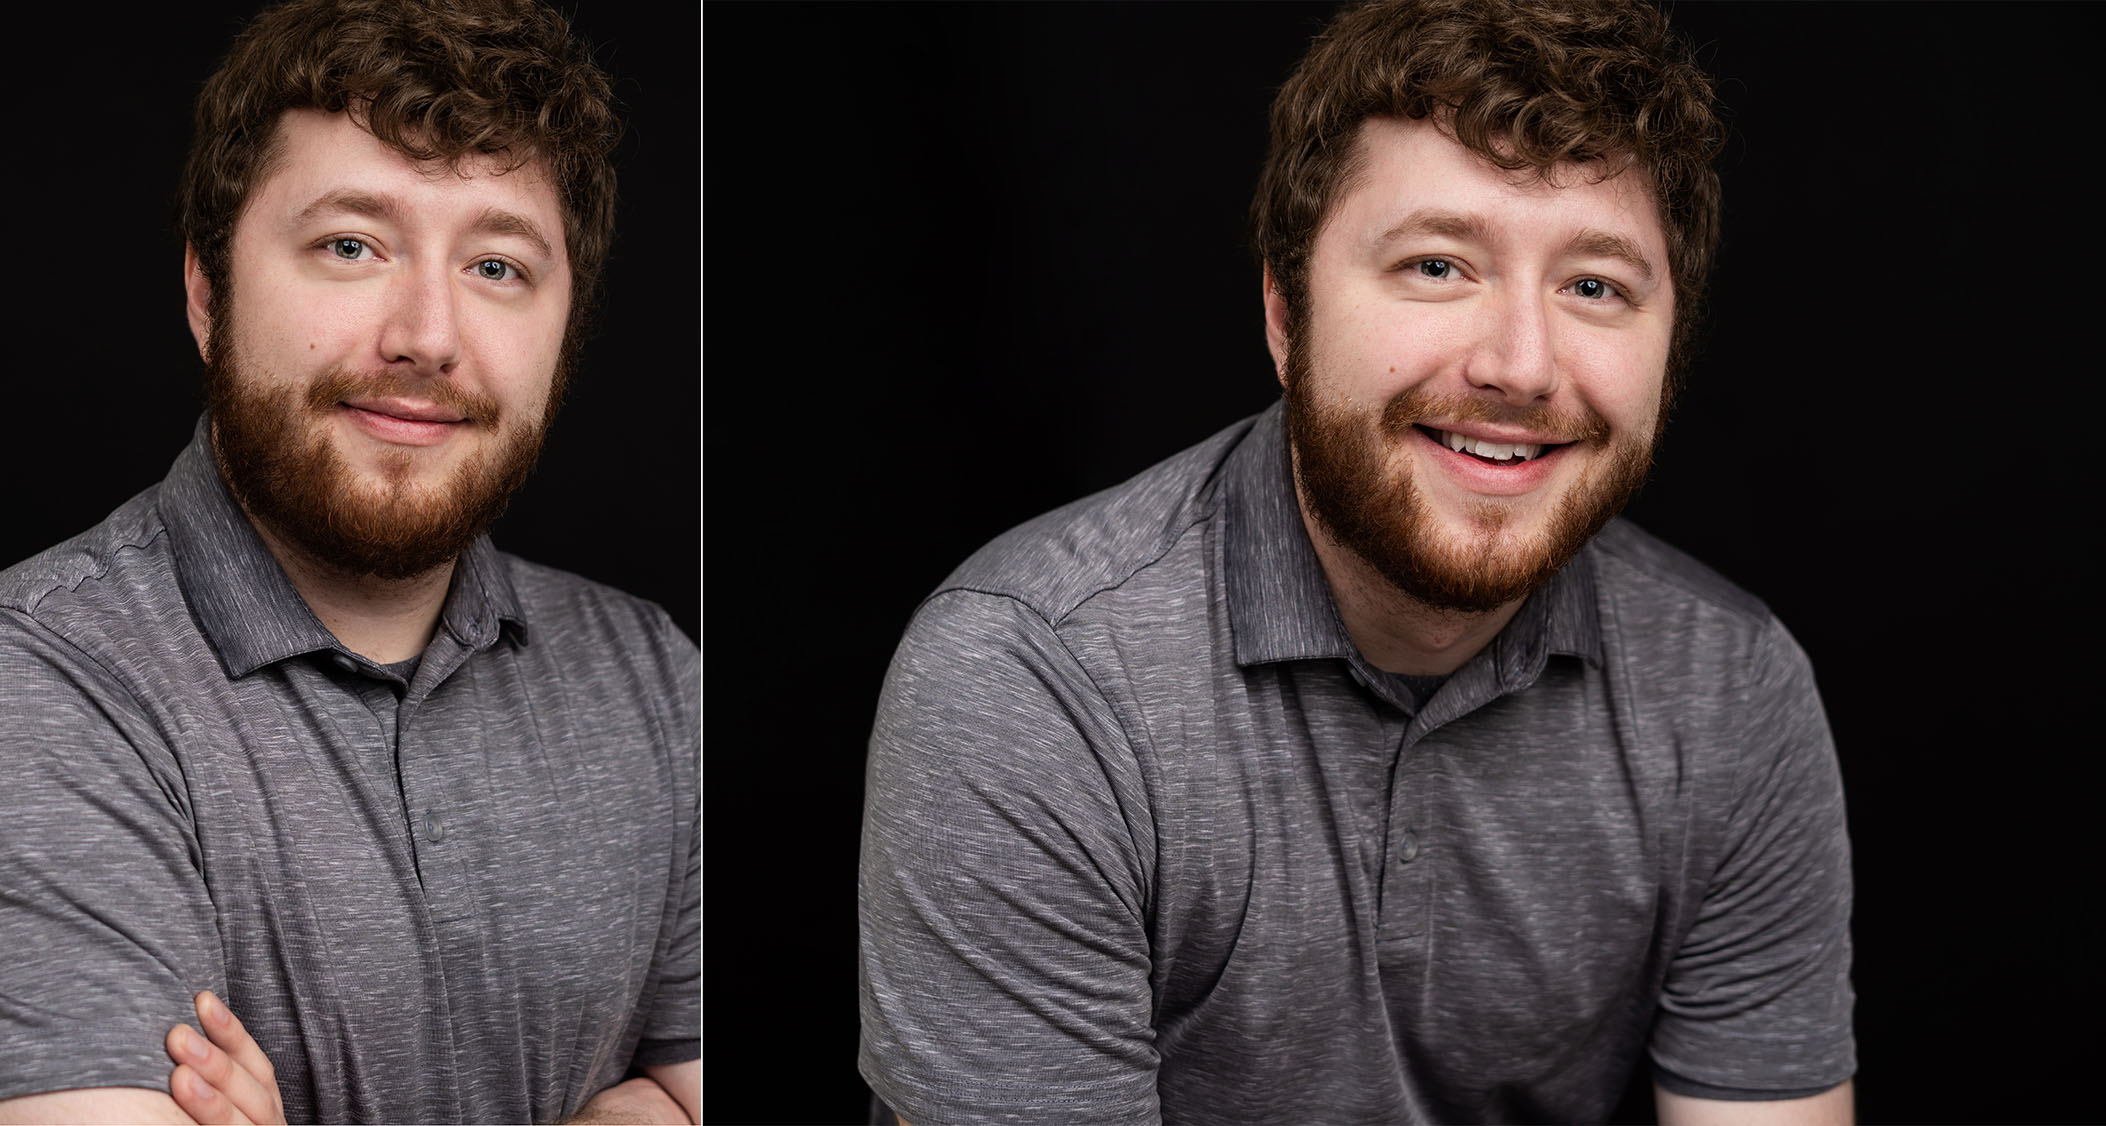 minneapolis-mens-headshot-phographer